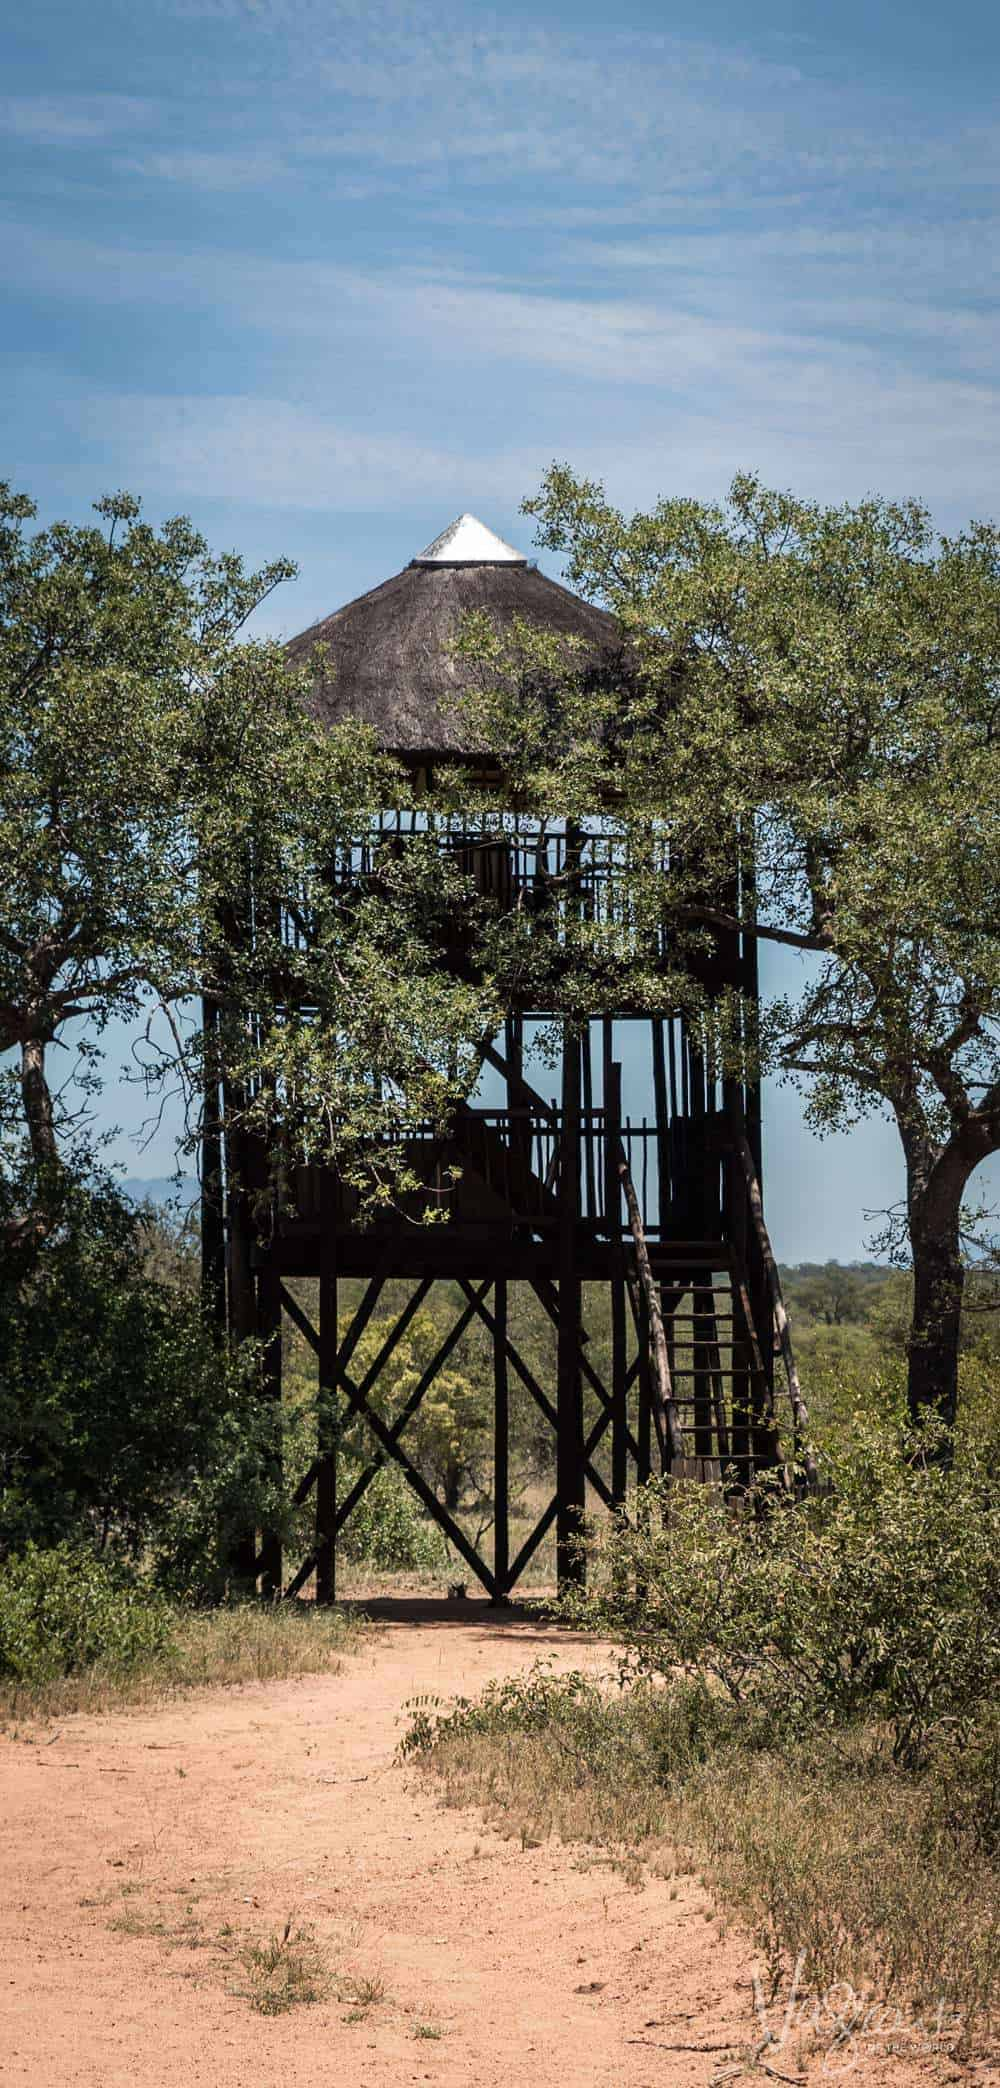 Experience unique safari accommodation in your own private tree house at Africa on Foot